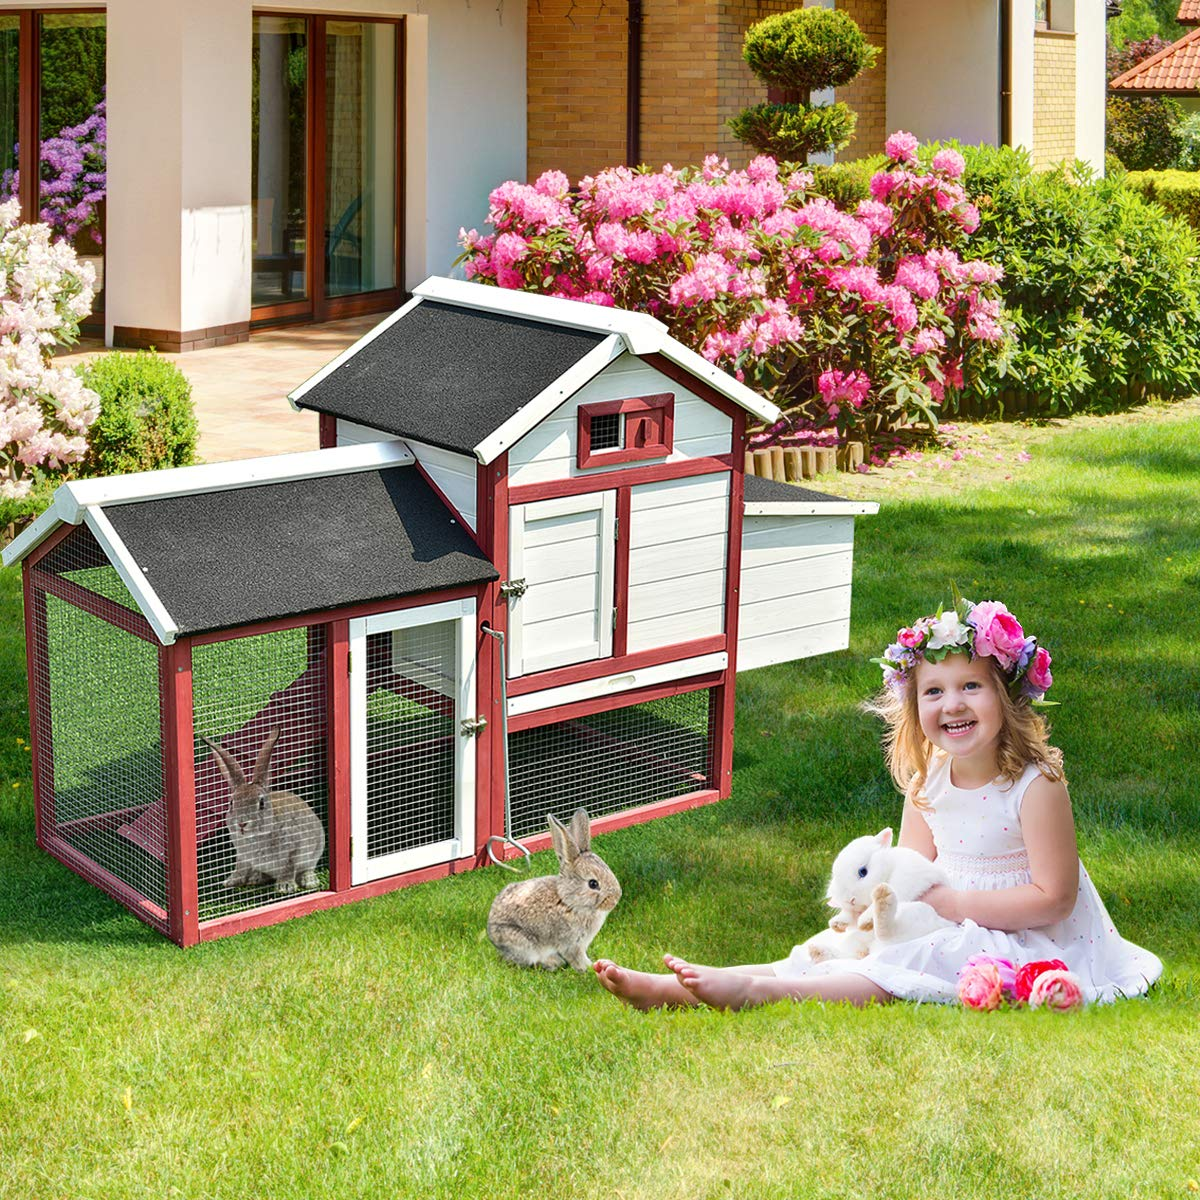 Tangkula 60'' Large Rabbit Hutch Wooden White Rabbit Bunny Outdoor Animal Cage Rabbit Hutch House with Black Linoleum Roof by Tangkula (Image #3)